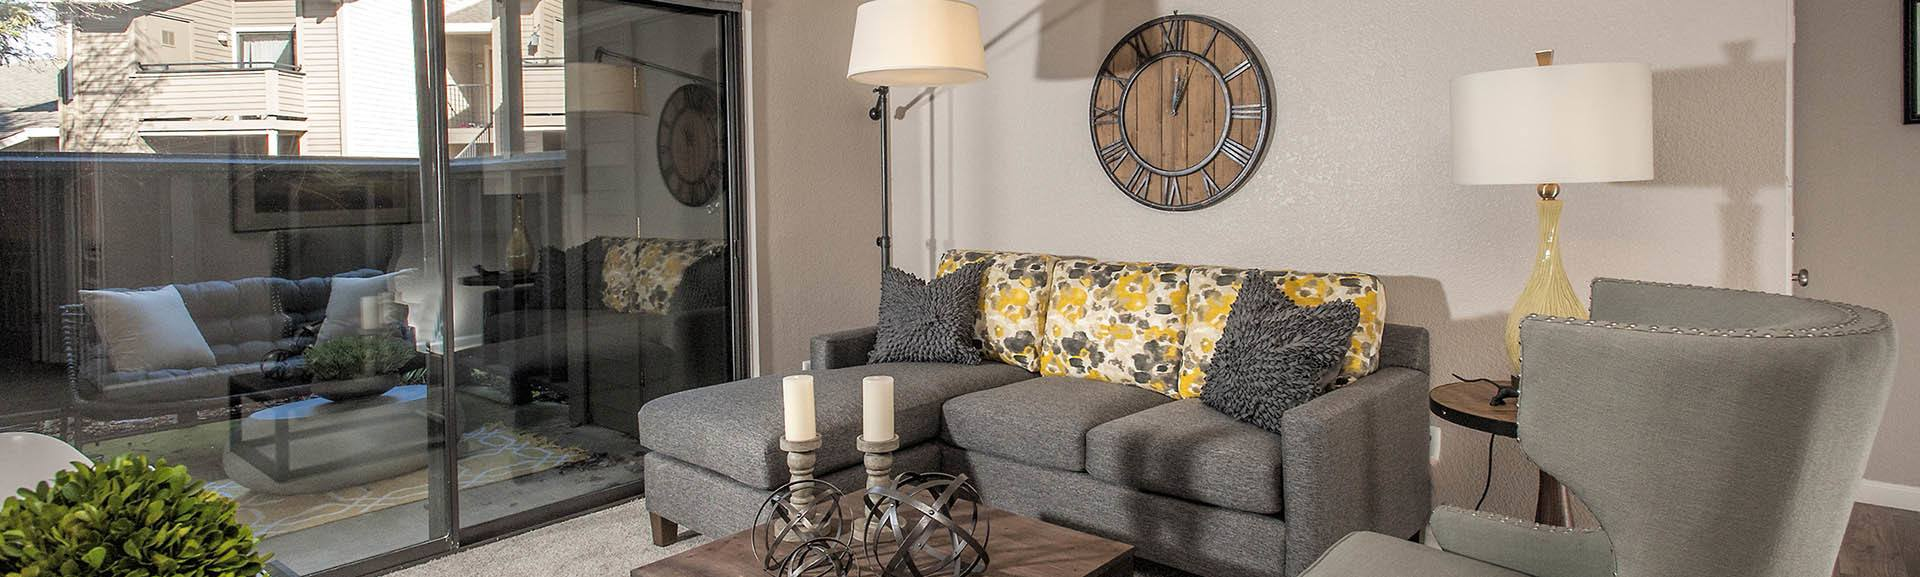 View our floor plans at Deer Valley Apartment Homes on our website